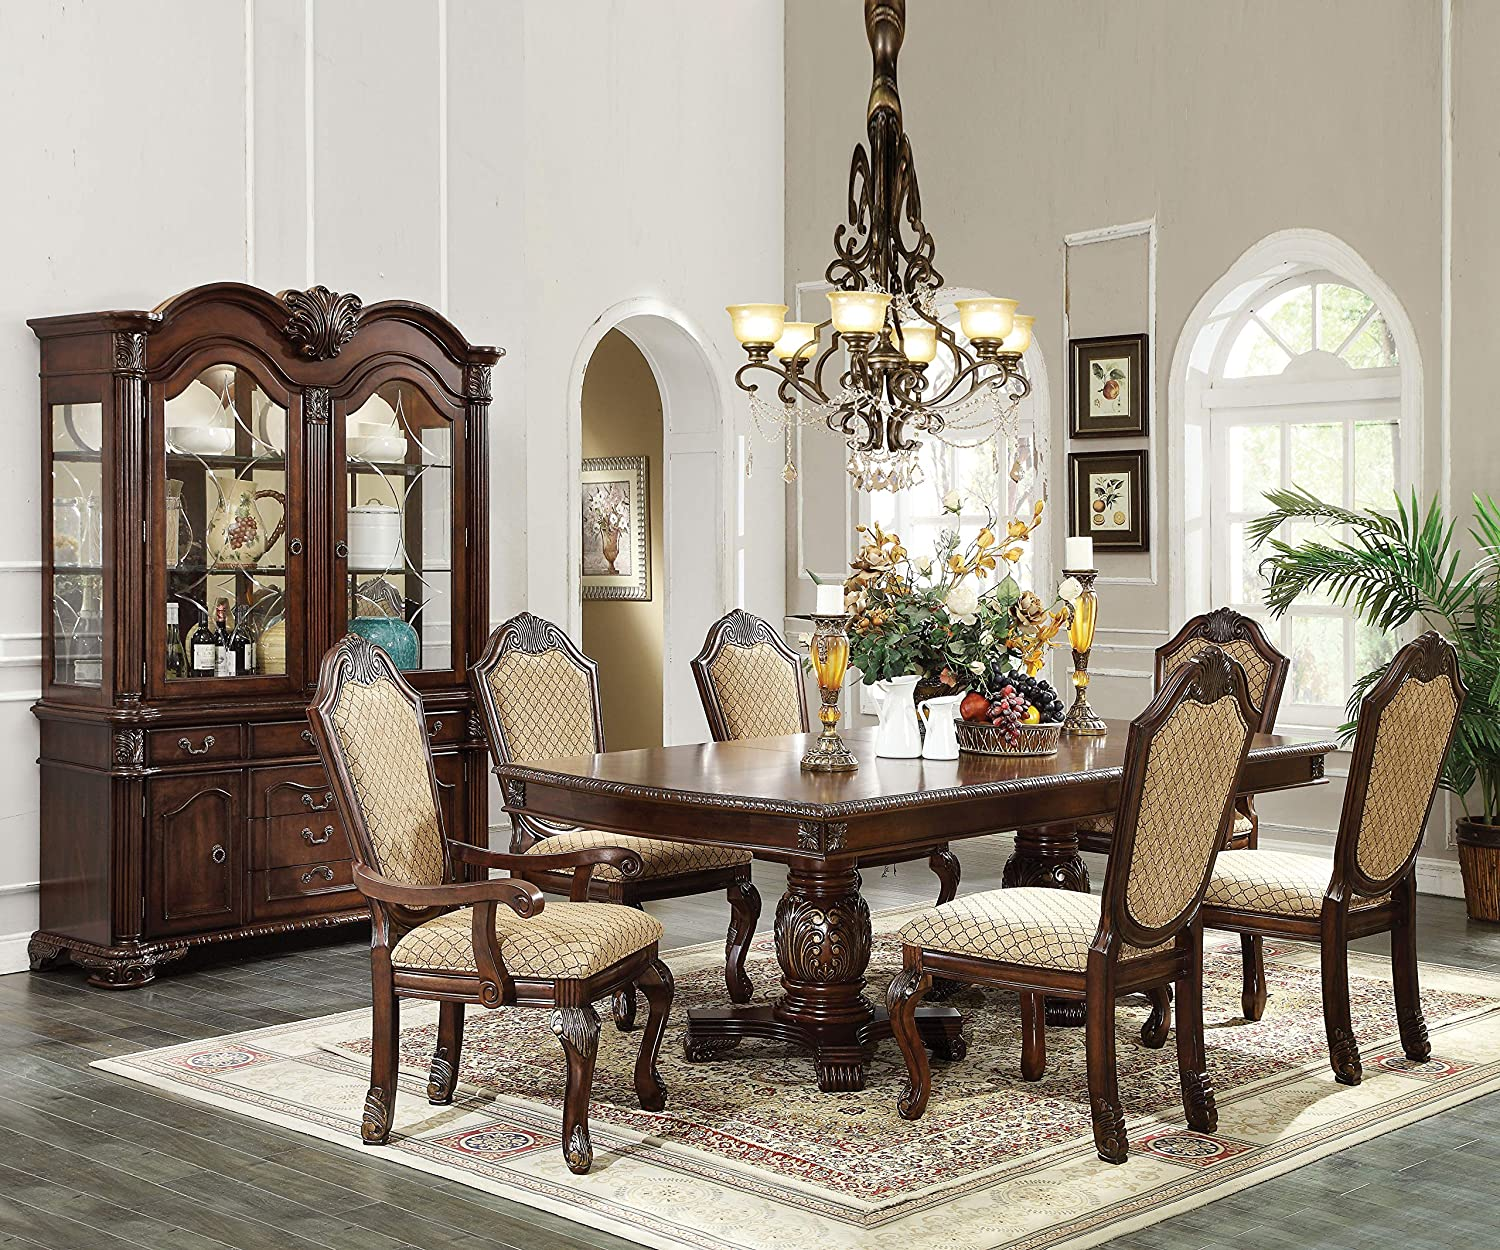 Benjara Benzara Wooden Dining Max 74% OFF Table Pedestal Brown List price Double with